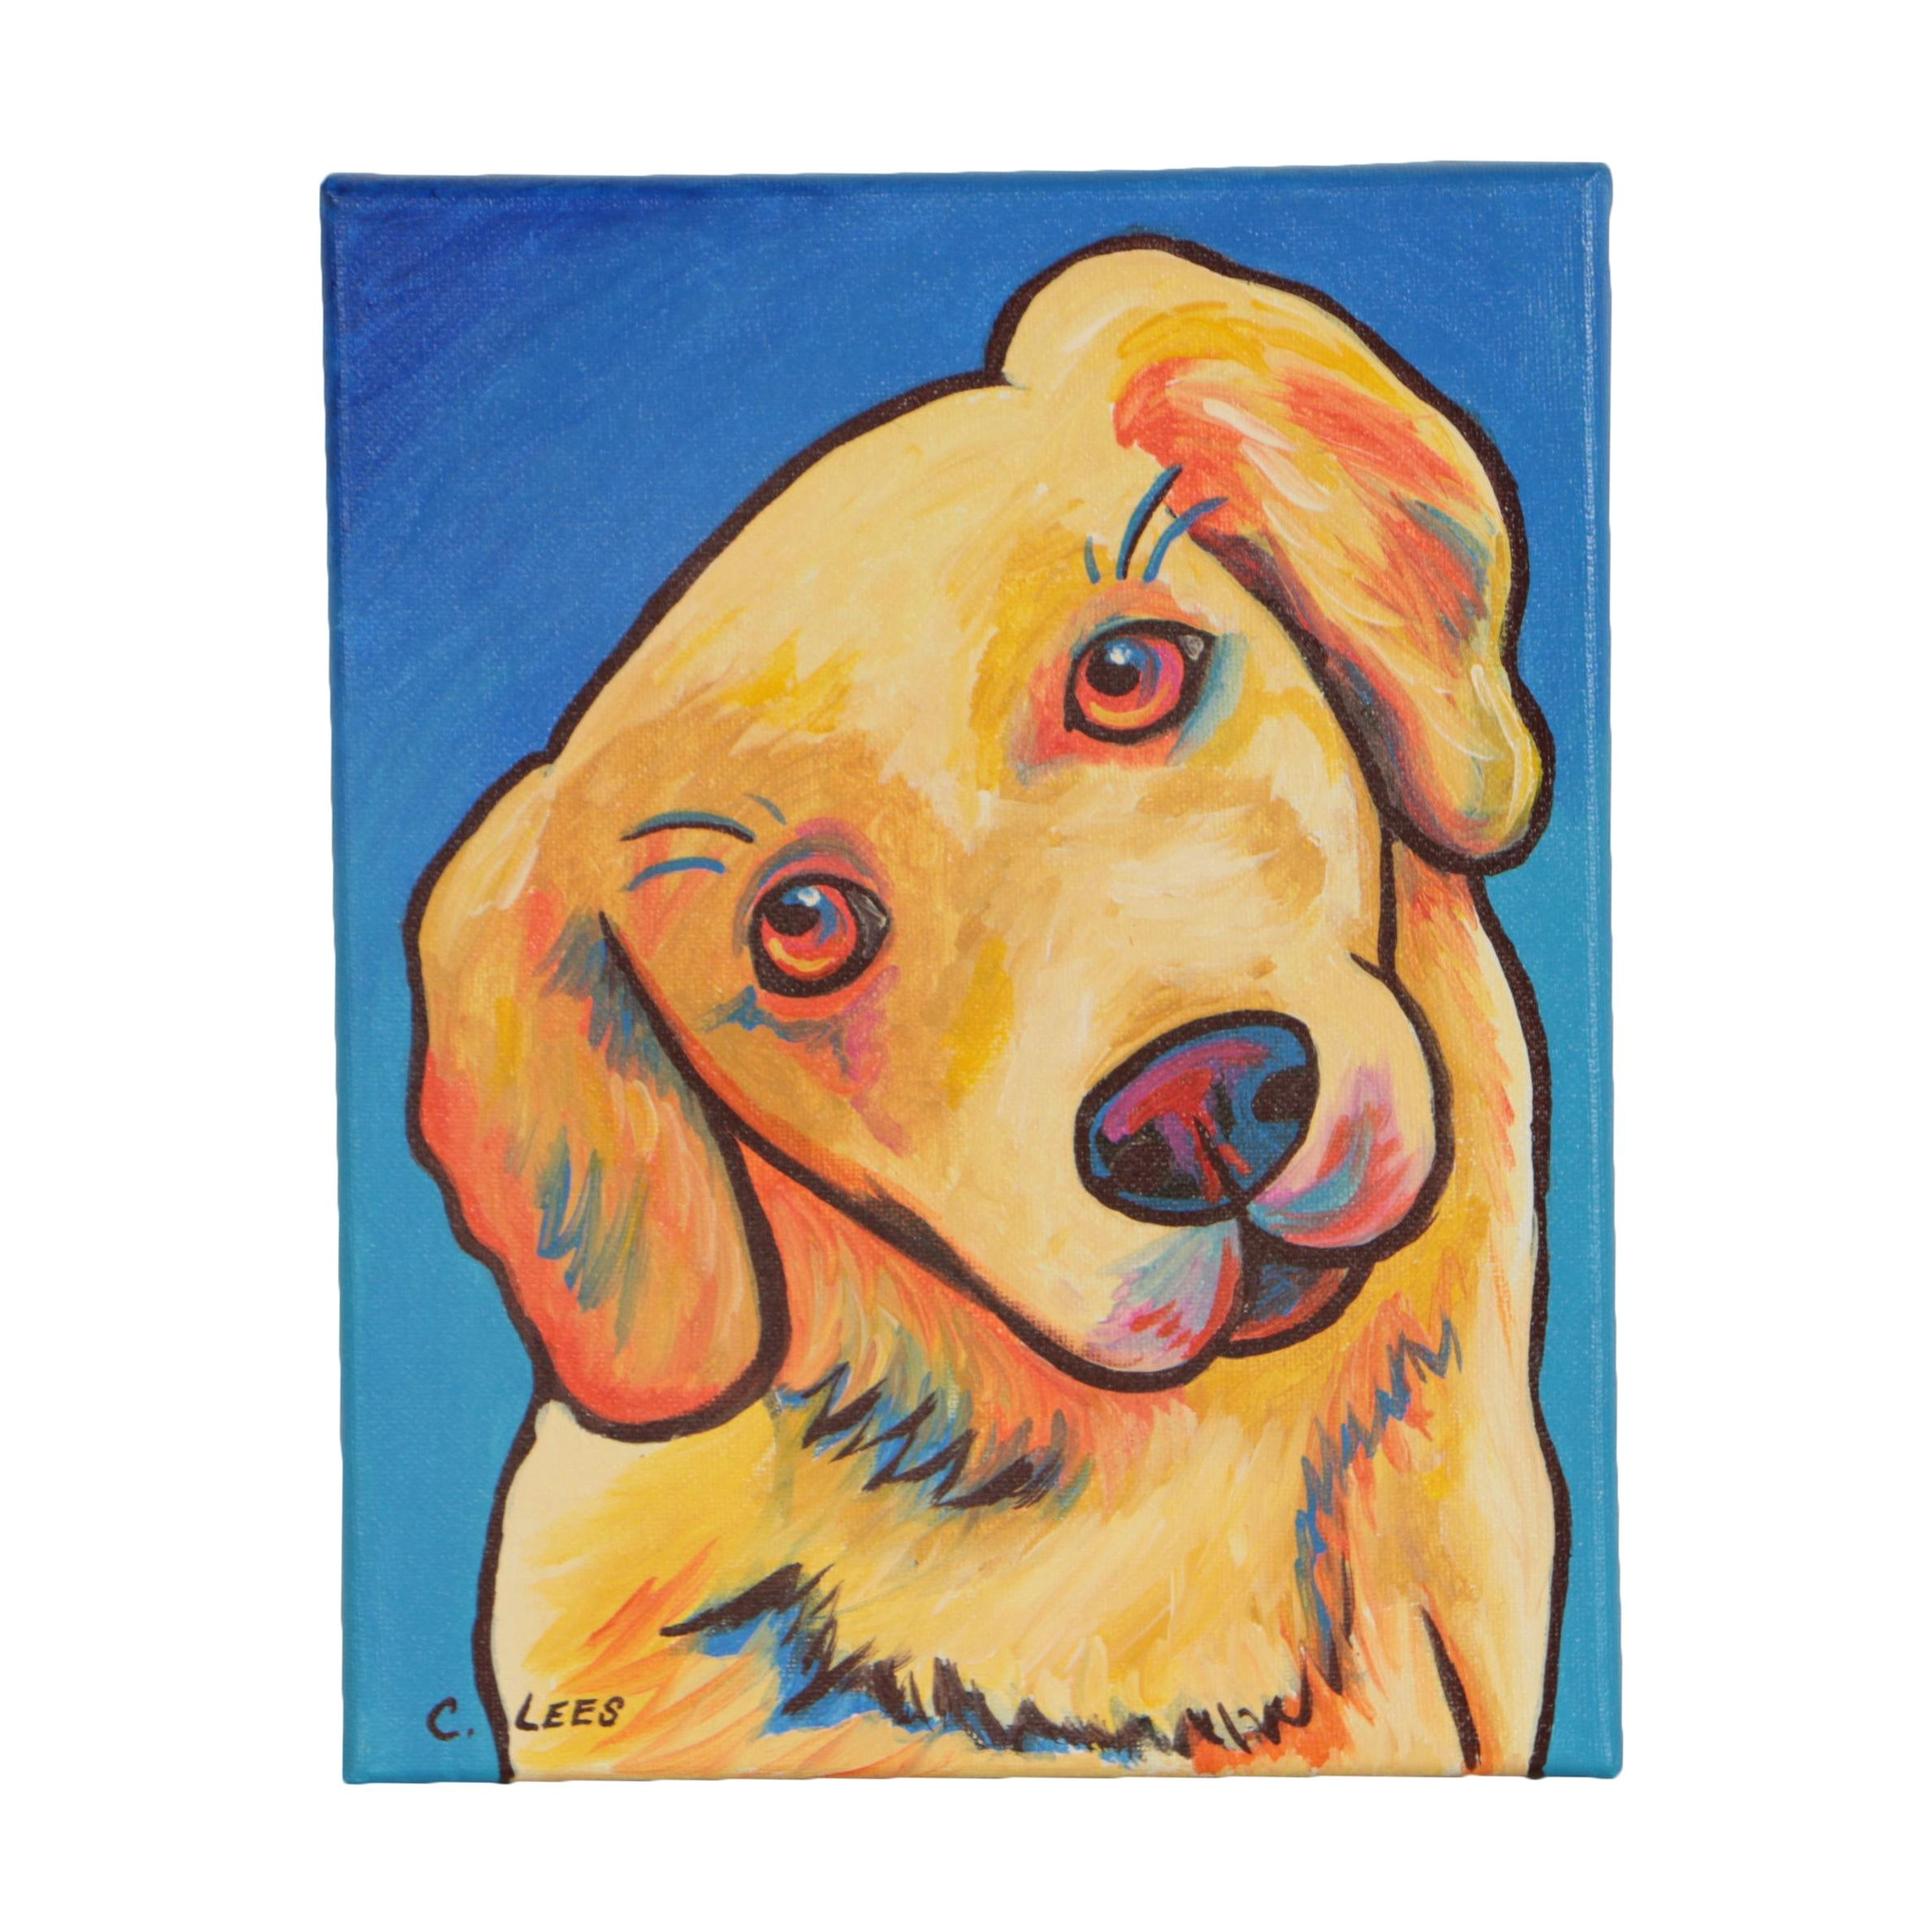 "Cathy Lees Acrylic Painting ""Yellow Lab Dog with Tilted Head"""